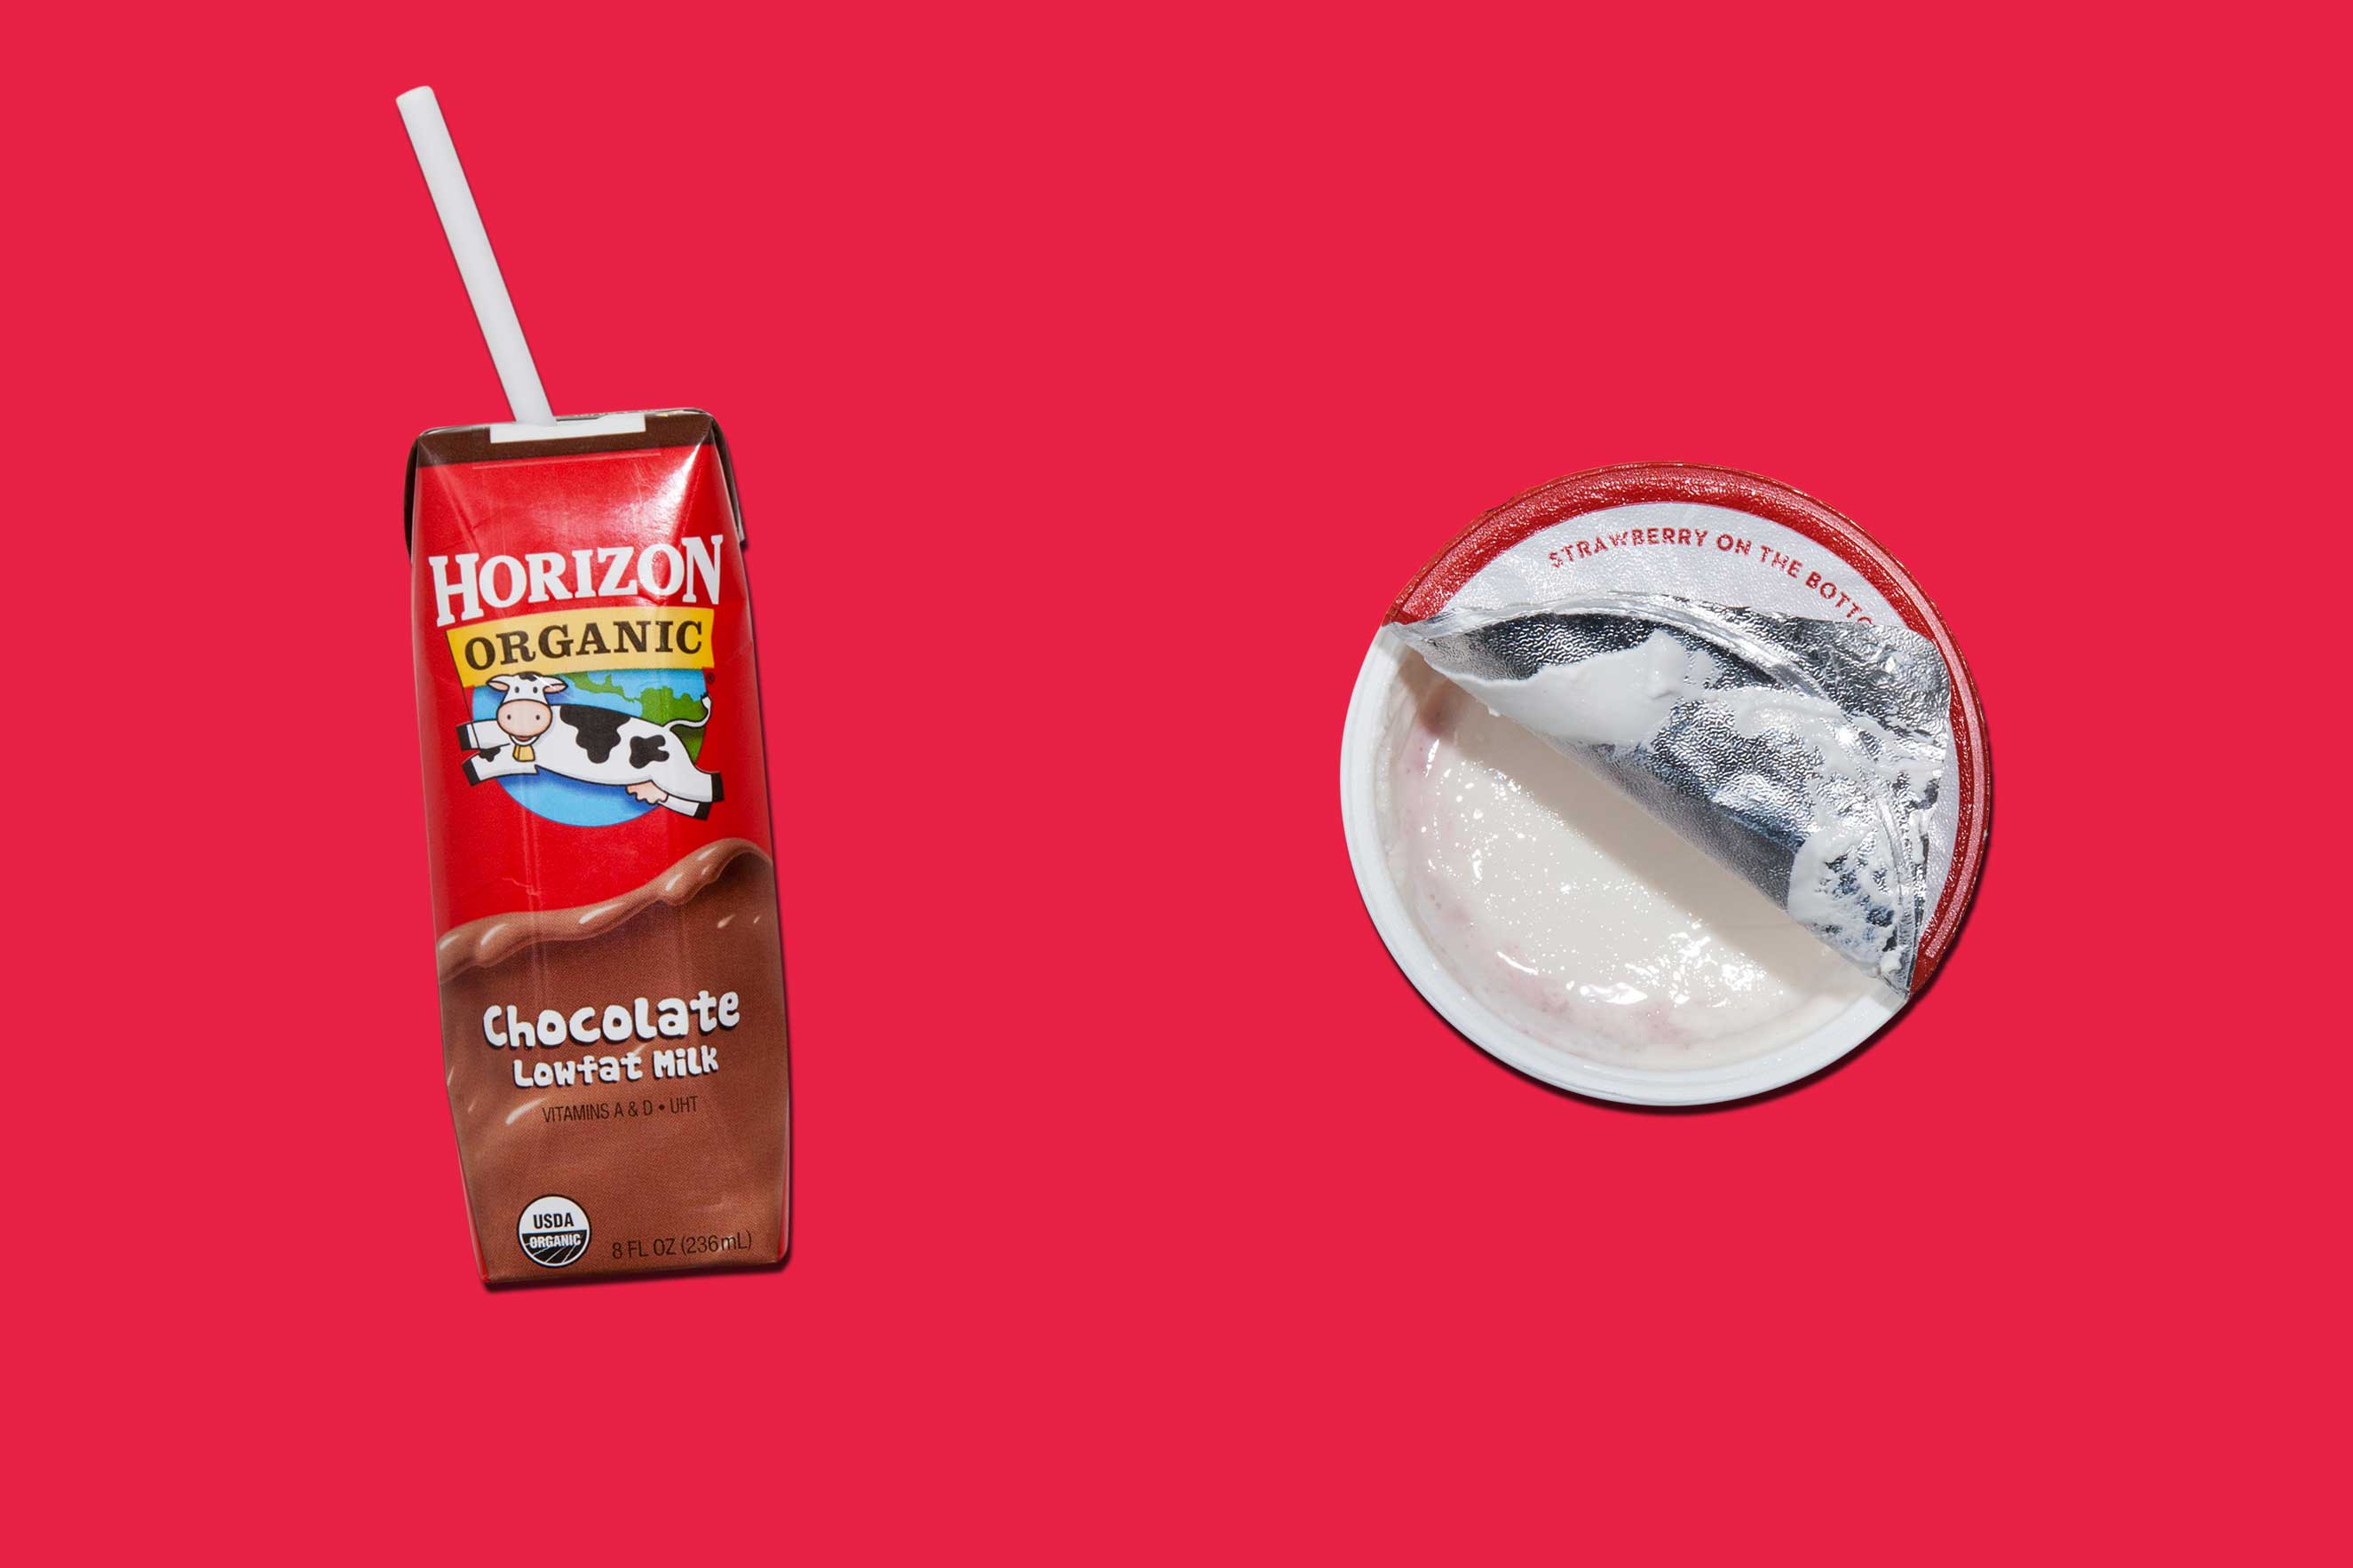 """5. Katie Ledecky's                               Power Snack:                                """"I never had much chocolate milk as a kid,"""" says the Olympic swimmer. """"But now I always have it right after practice, with yogurt, so I can get the right amount of protein and carbs to keep me going."""